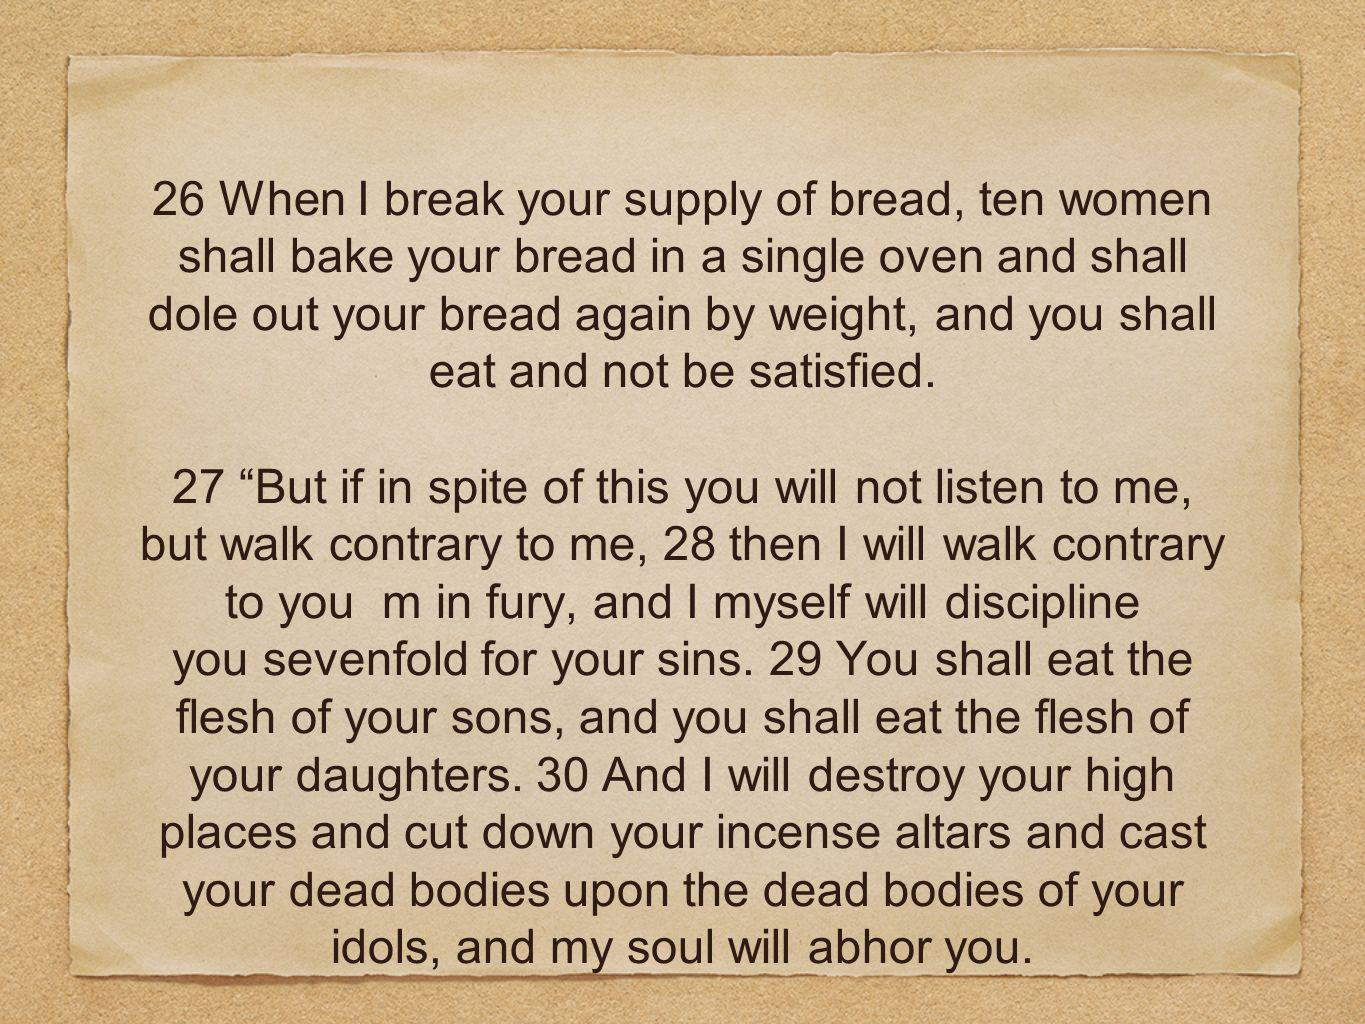 26 When I break your supply of bread, ten women shall bake your bread in a single oven and shall dole out your bread again by weight, and you shall eat and not be satisfied.